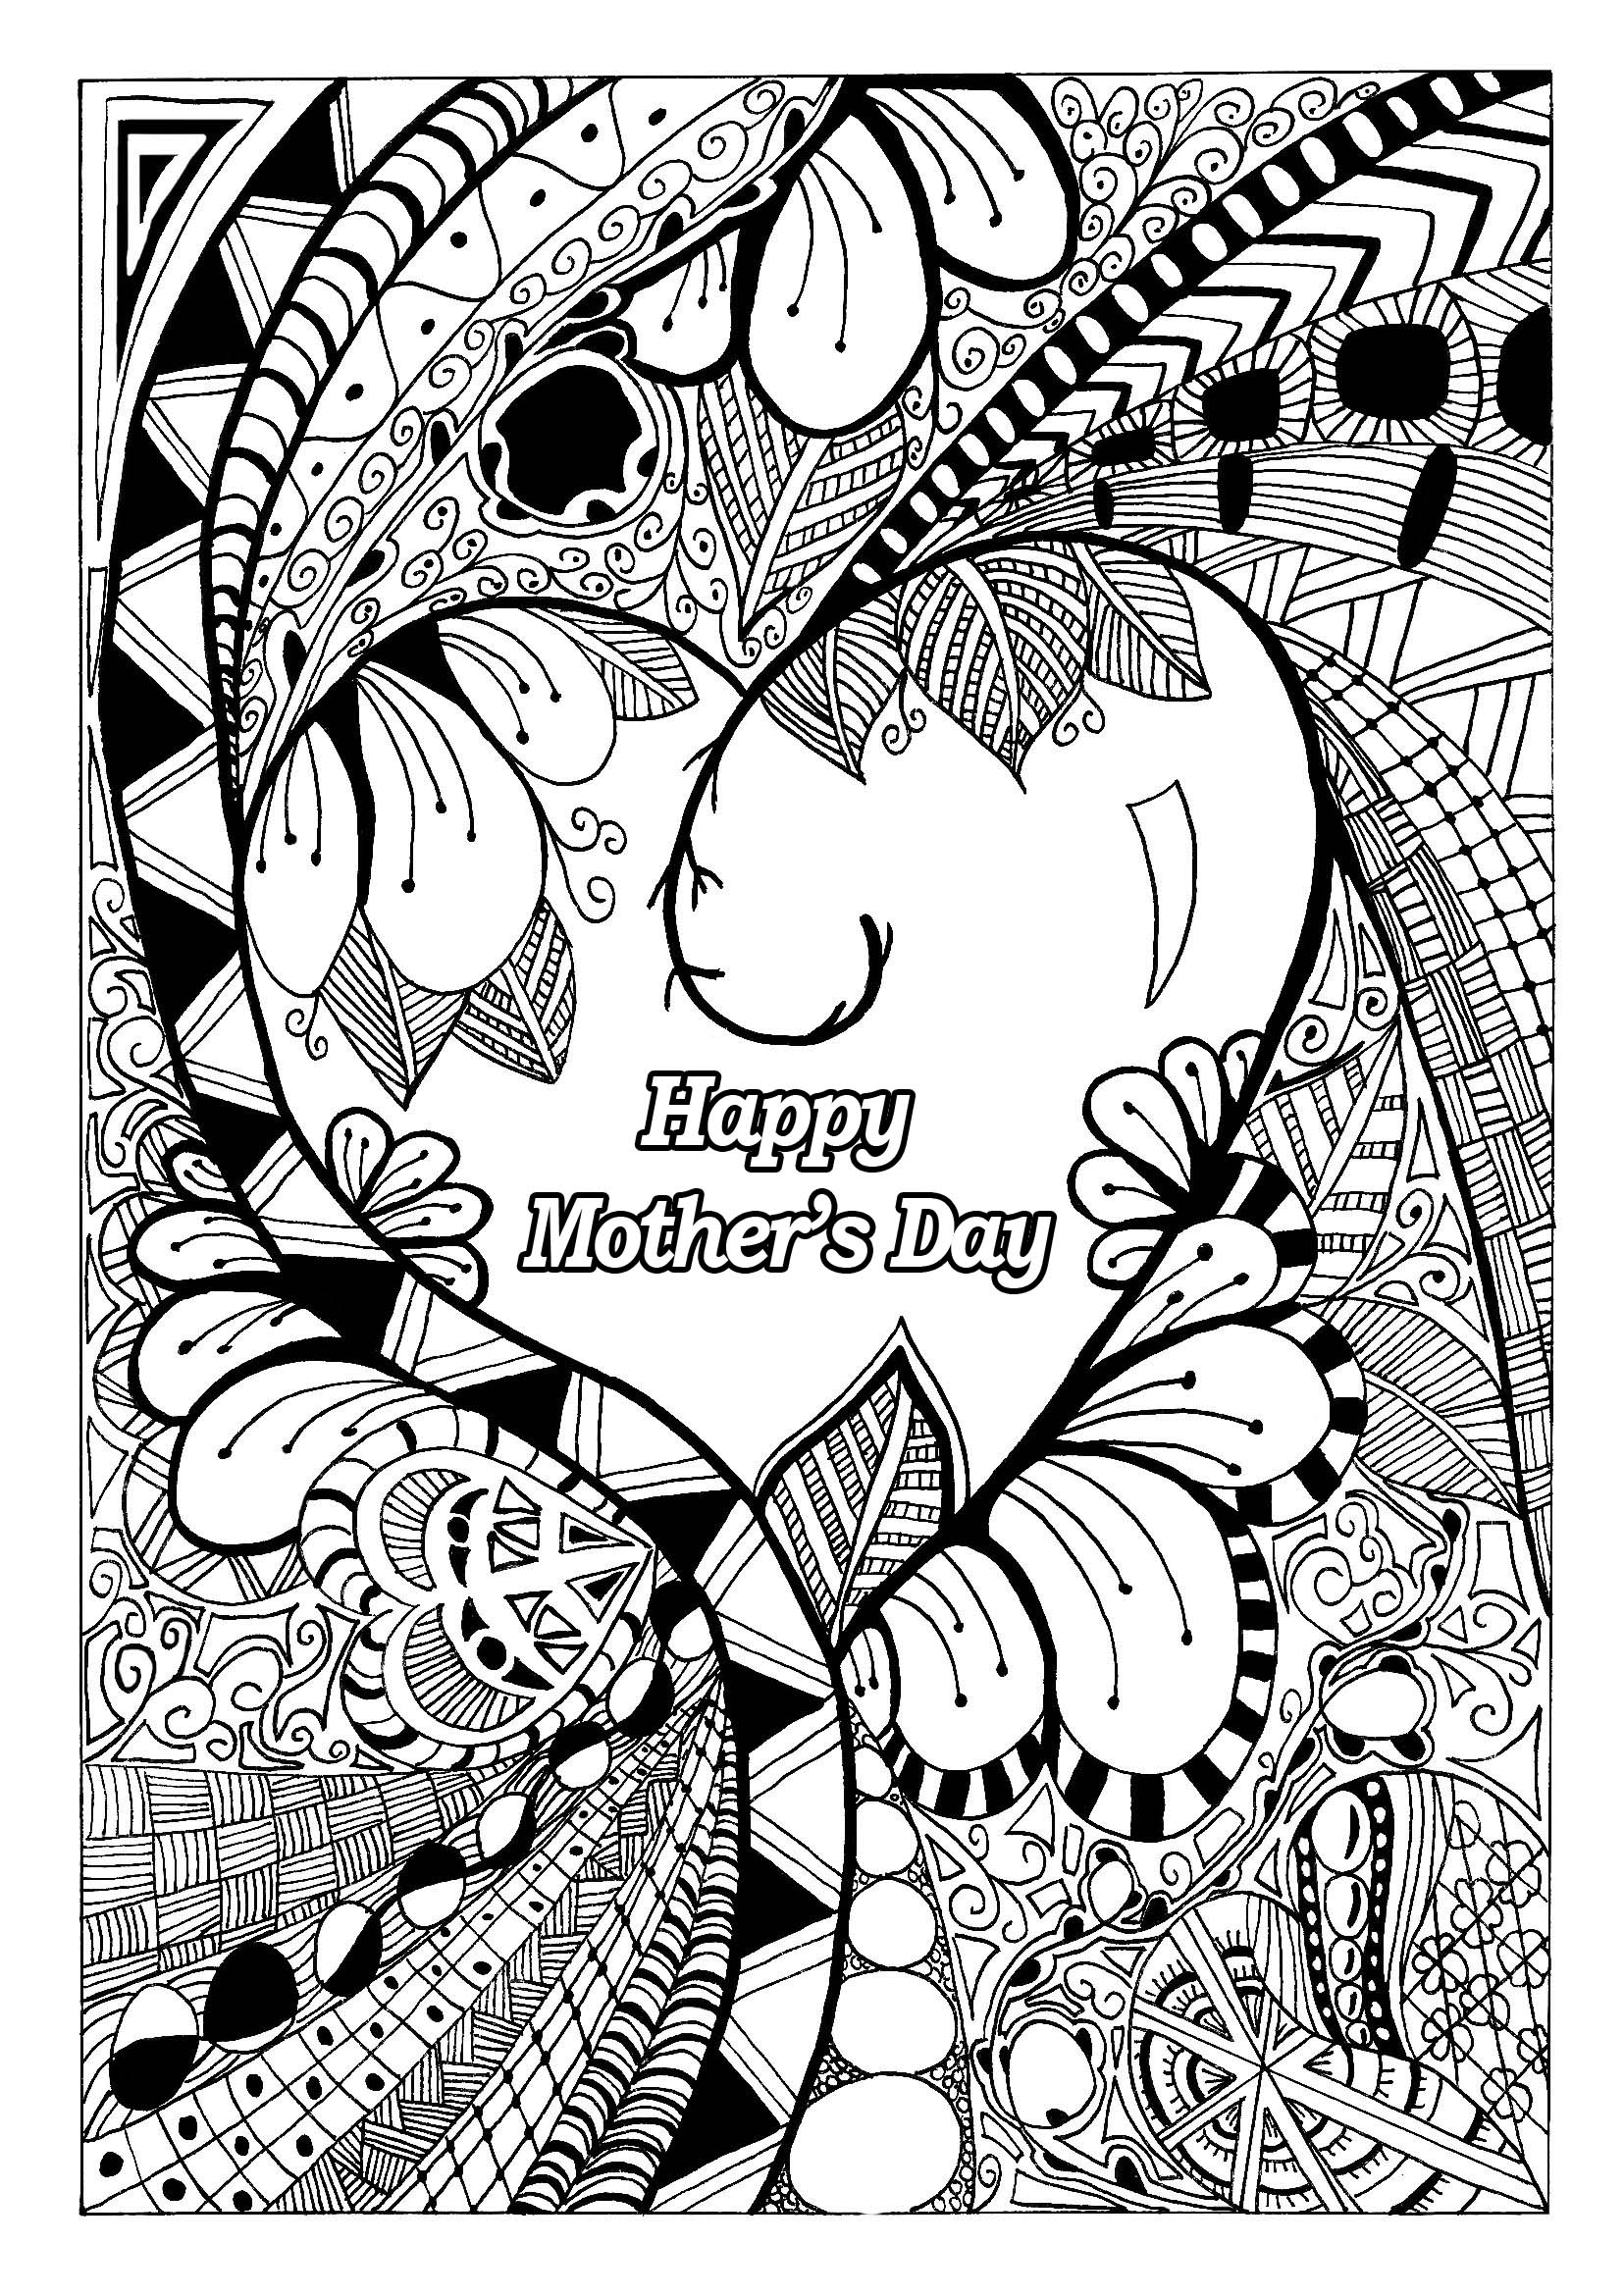 coloring pages for mother\\\\\\\'s day Mother s day 1   Mother's Day Adult Coloring Pages coloring pages for mother\\\\\\\'s day